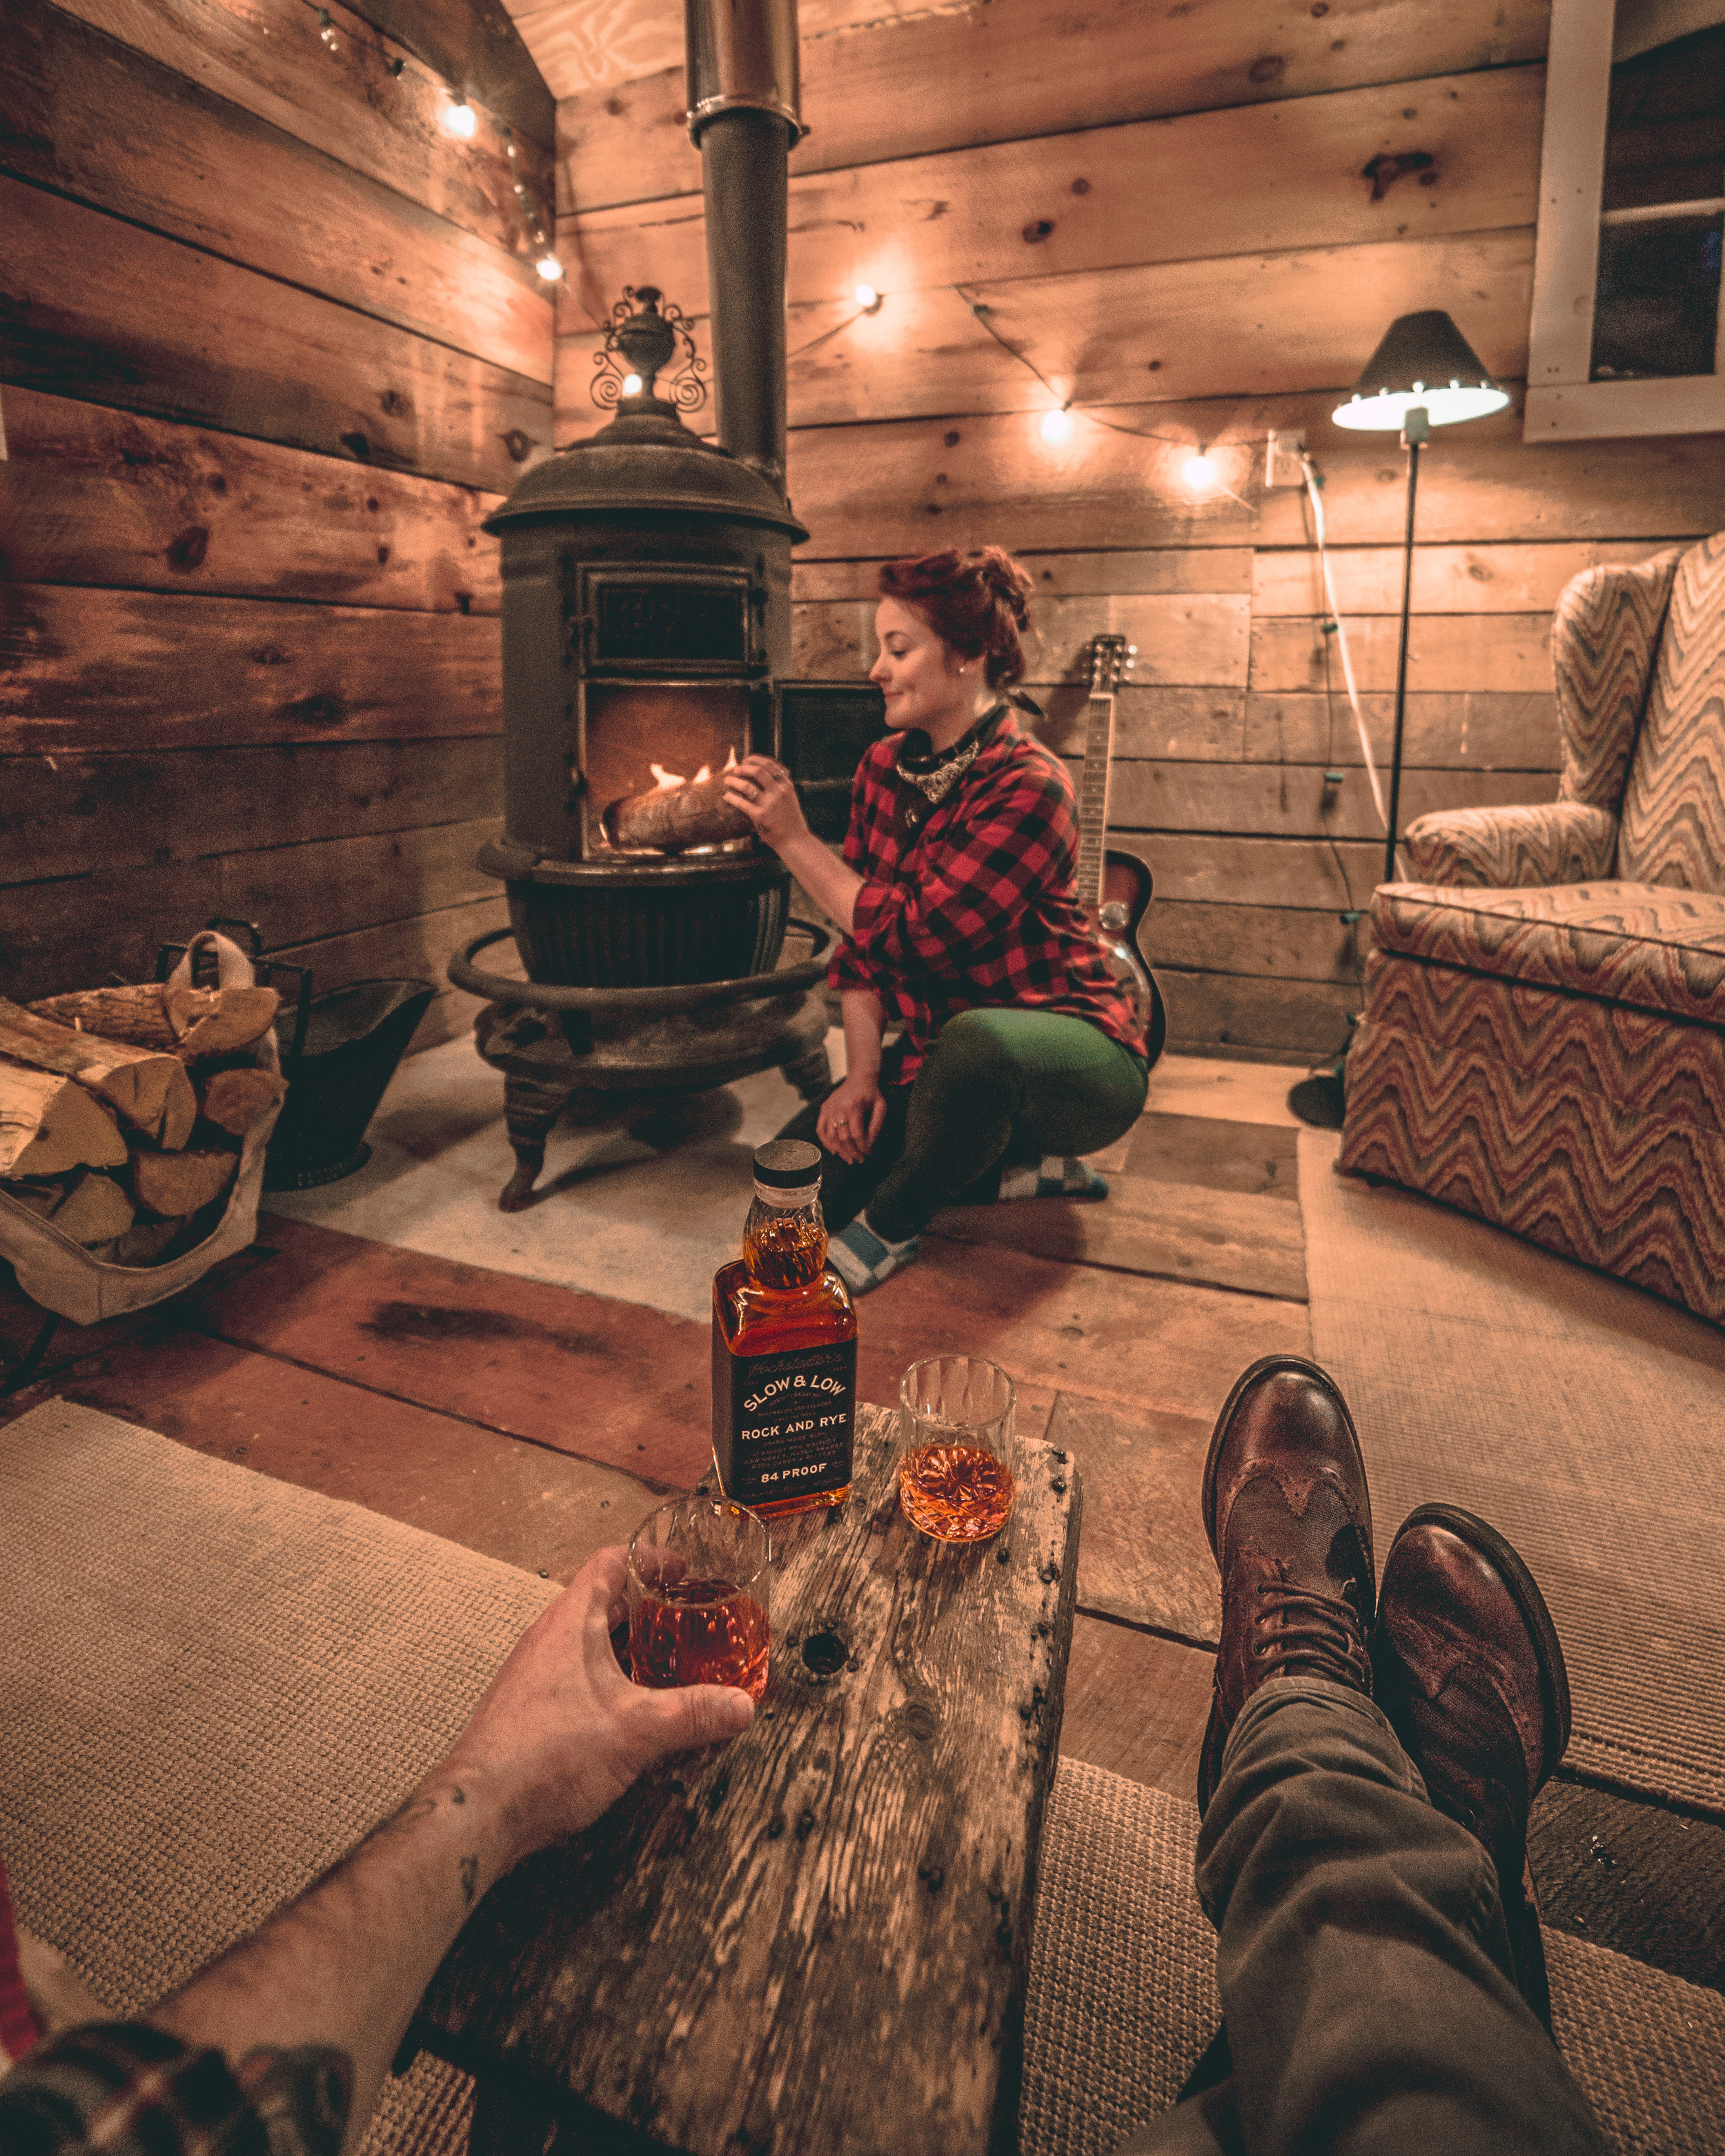 Hochstadter's Slow & Low Whiskey - Cabin themed content creation / Instagram collaboration